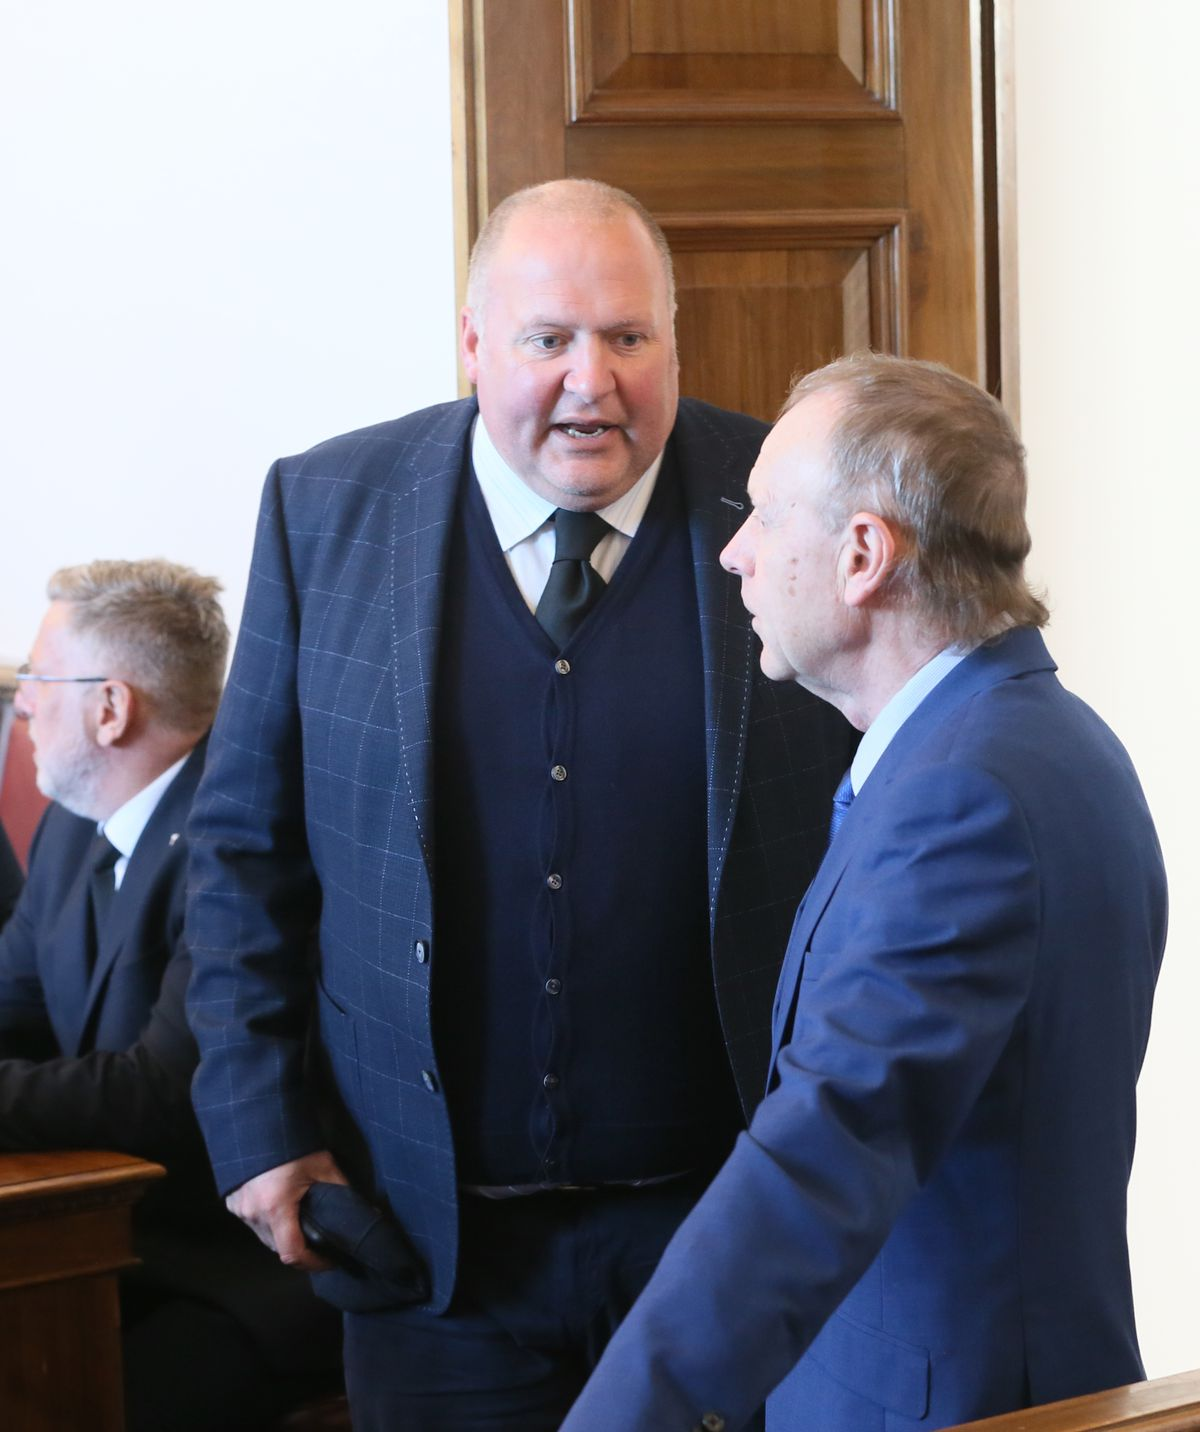 States' Assembly and Constitution members Deputy Simon Fairclough,left, and Deputy Lester Queripel. (Picture by Cassidy Jones, 30024219)